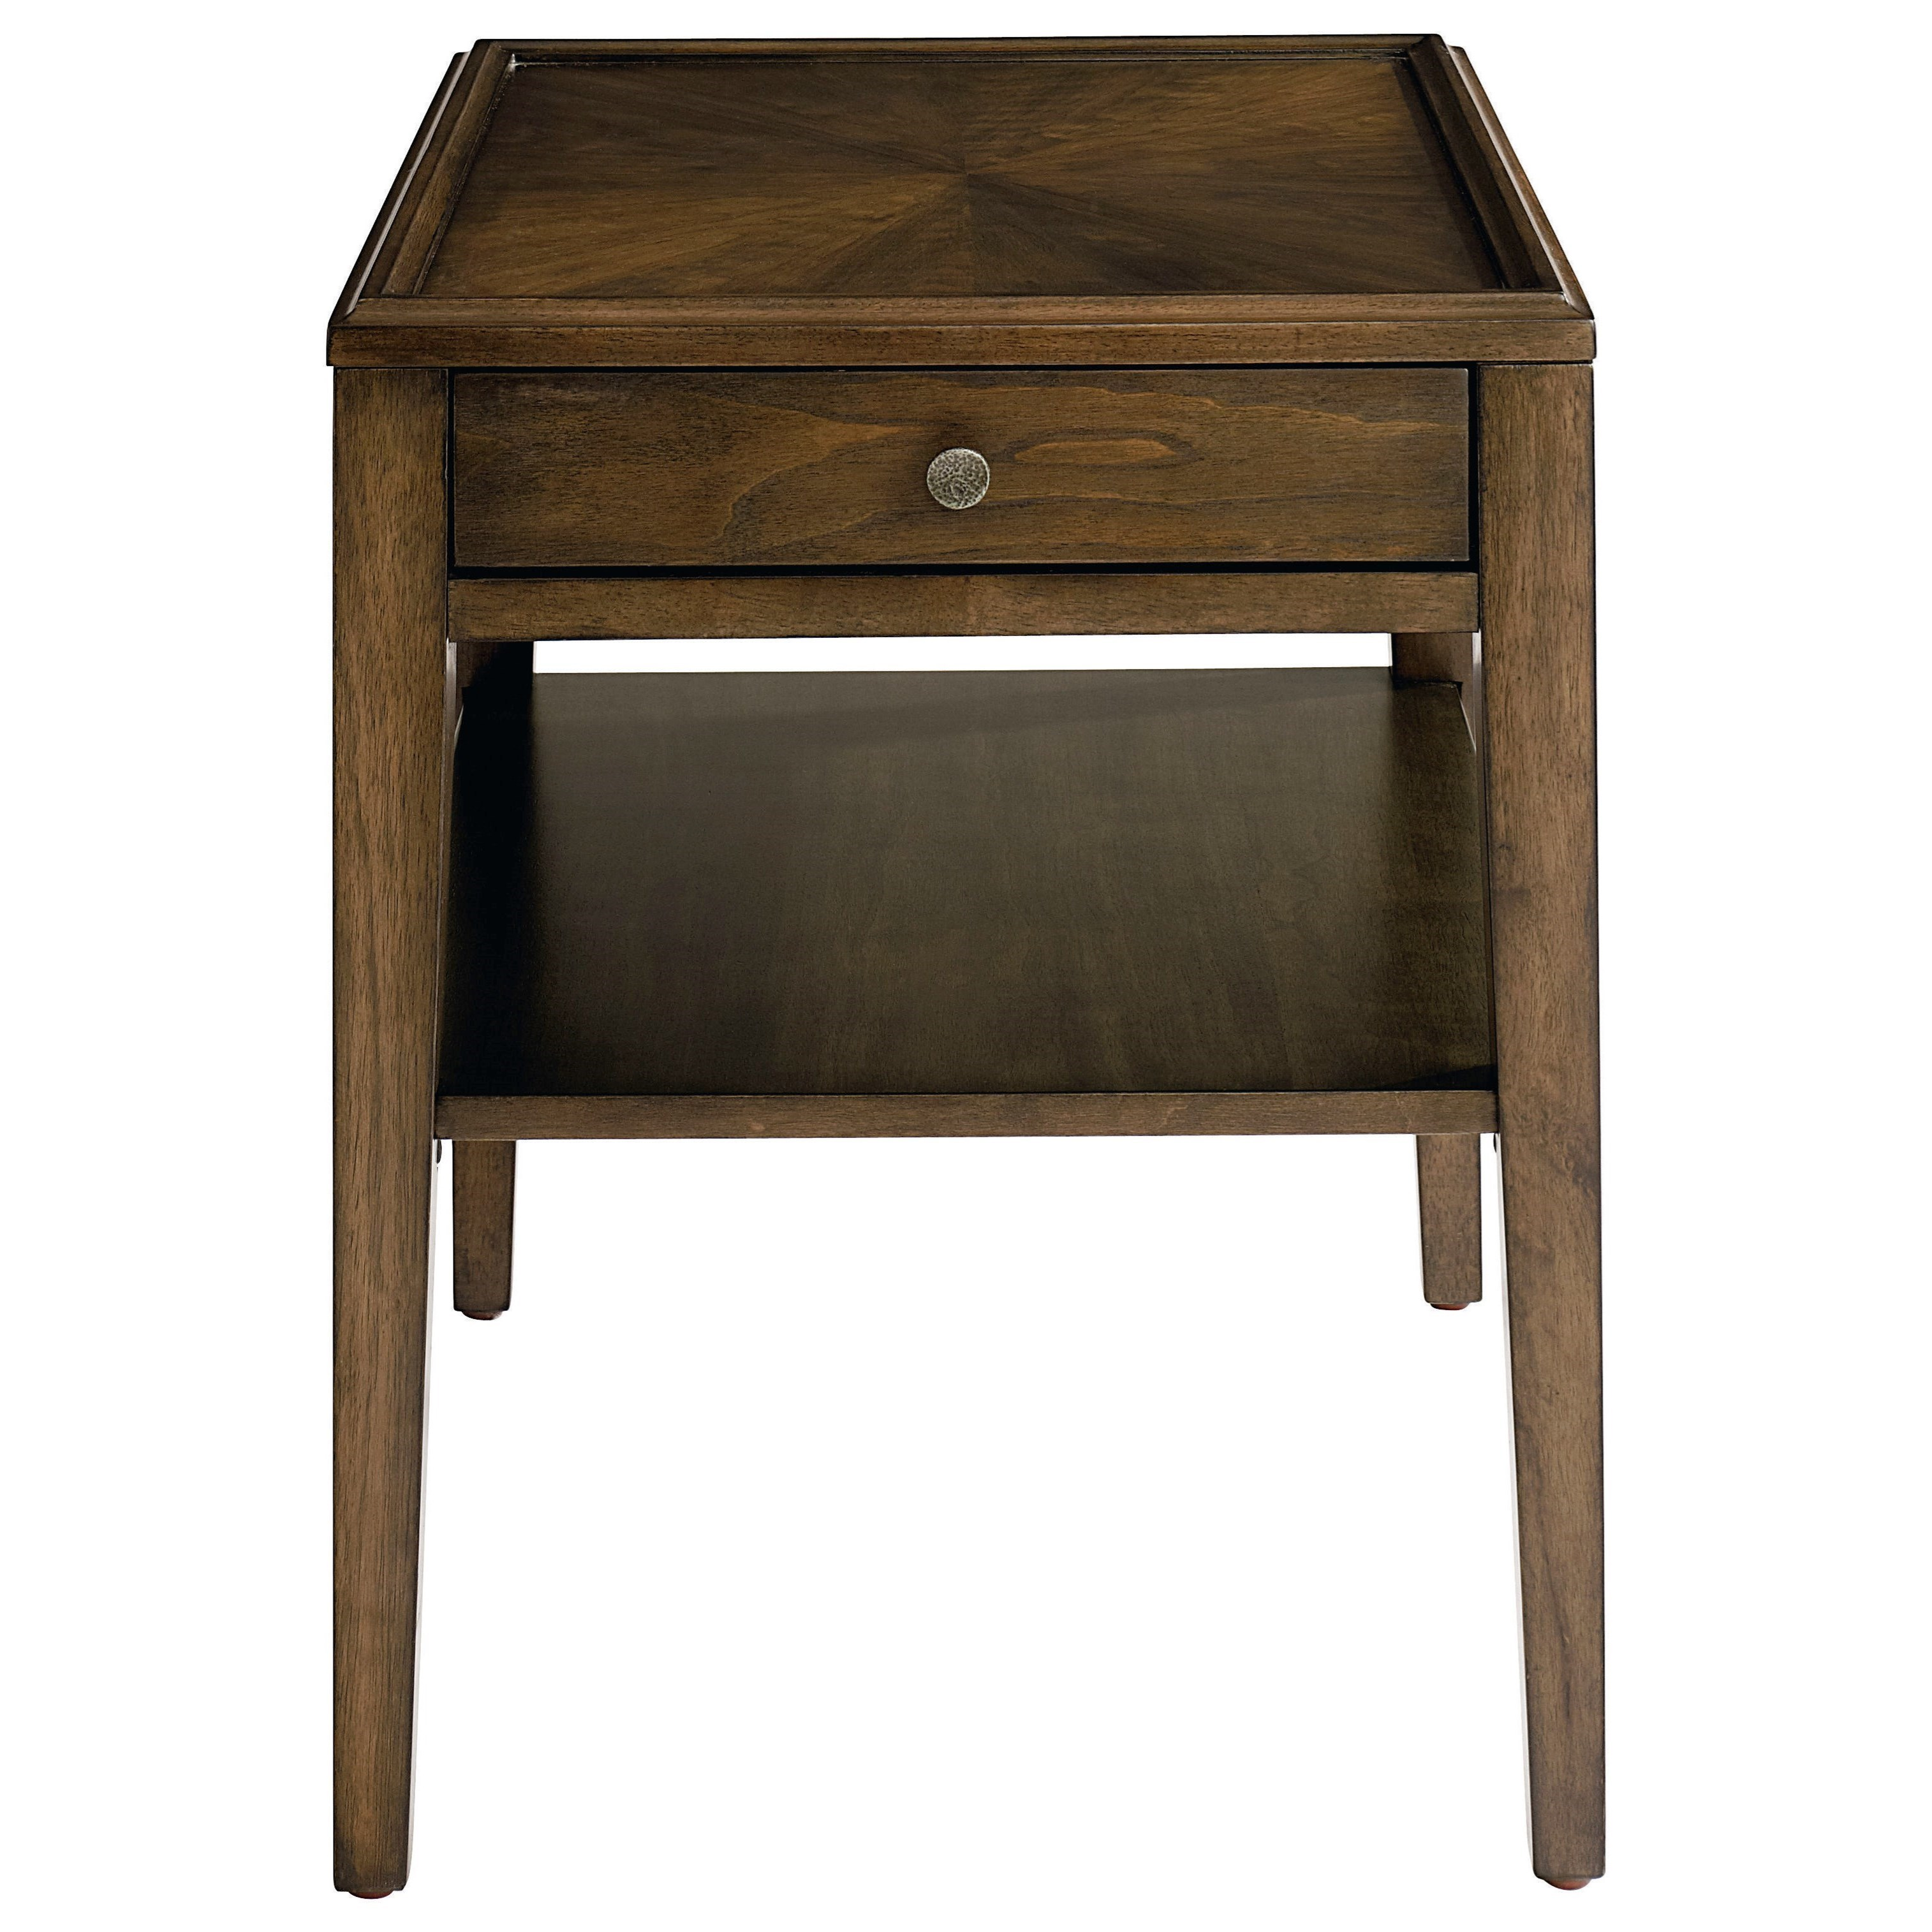 Palisades End Table by Bassett at Esprit Decor Home Furnishings